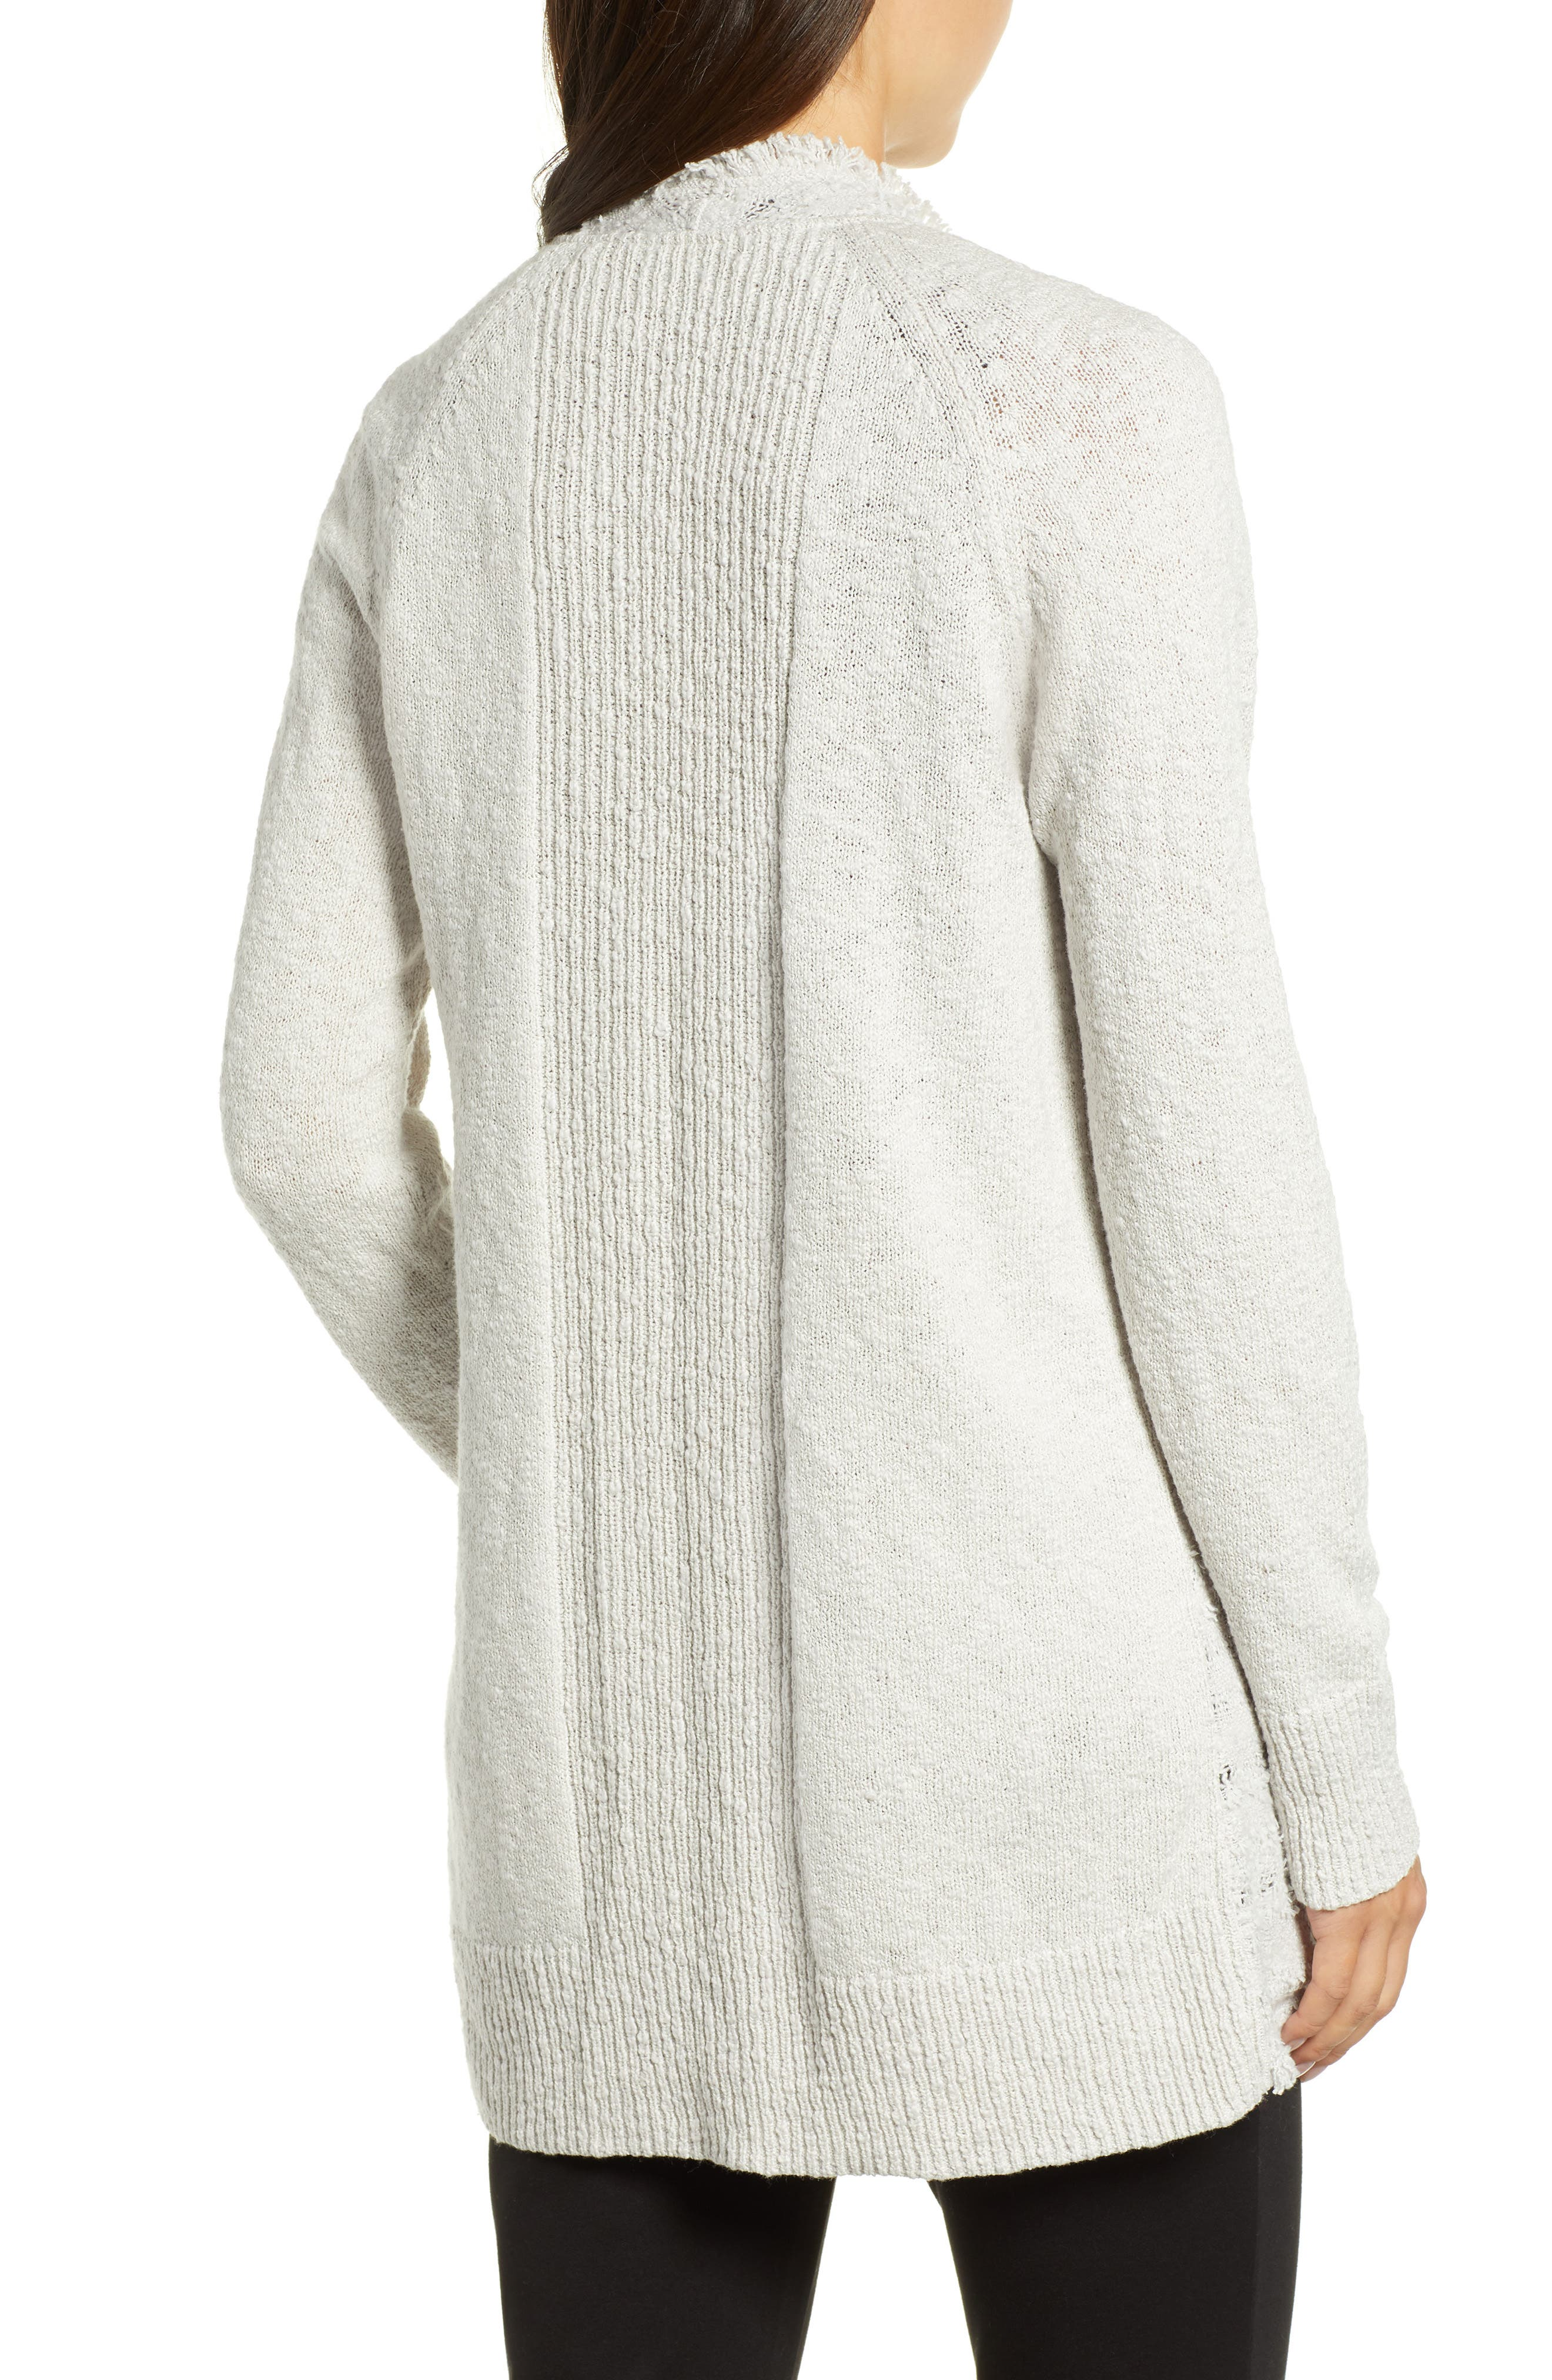 Carefree Cardigan,                             Alternate thumbnail 2, color,                             FROST